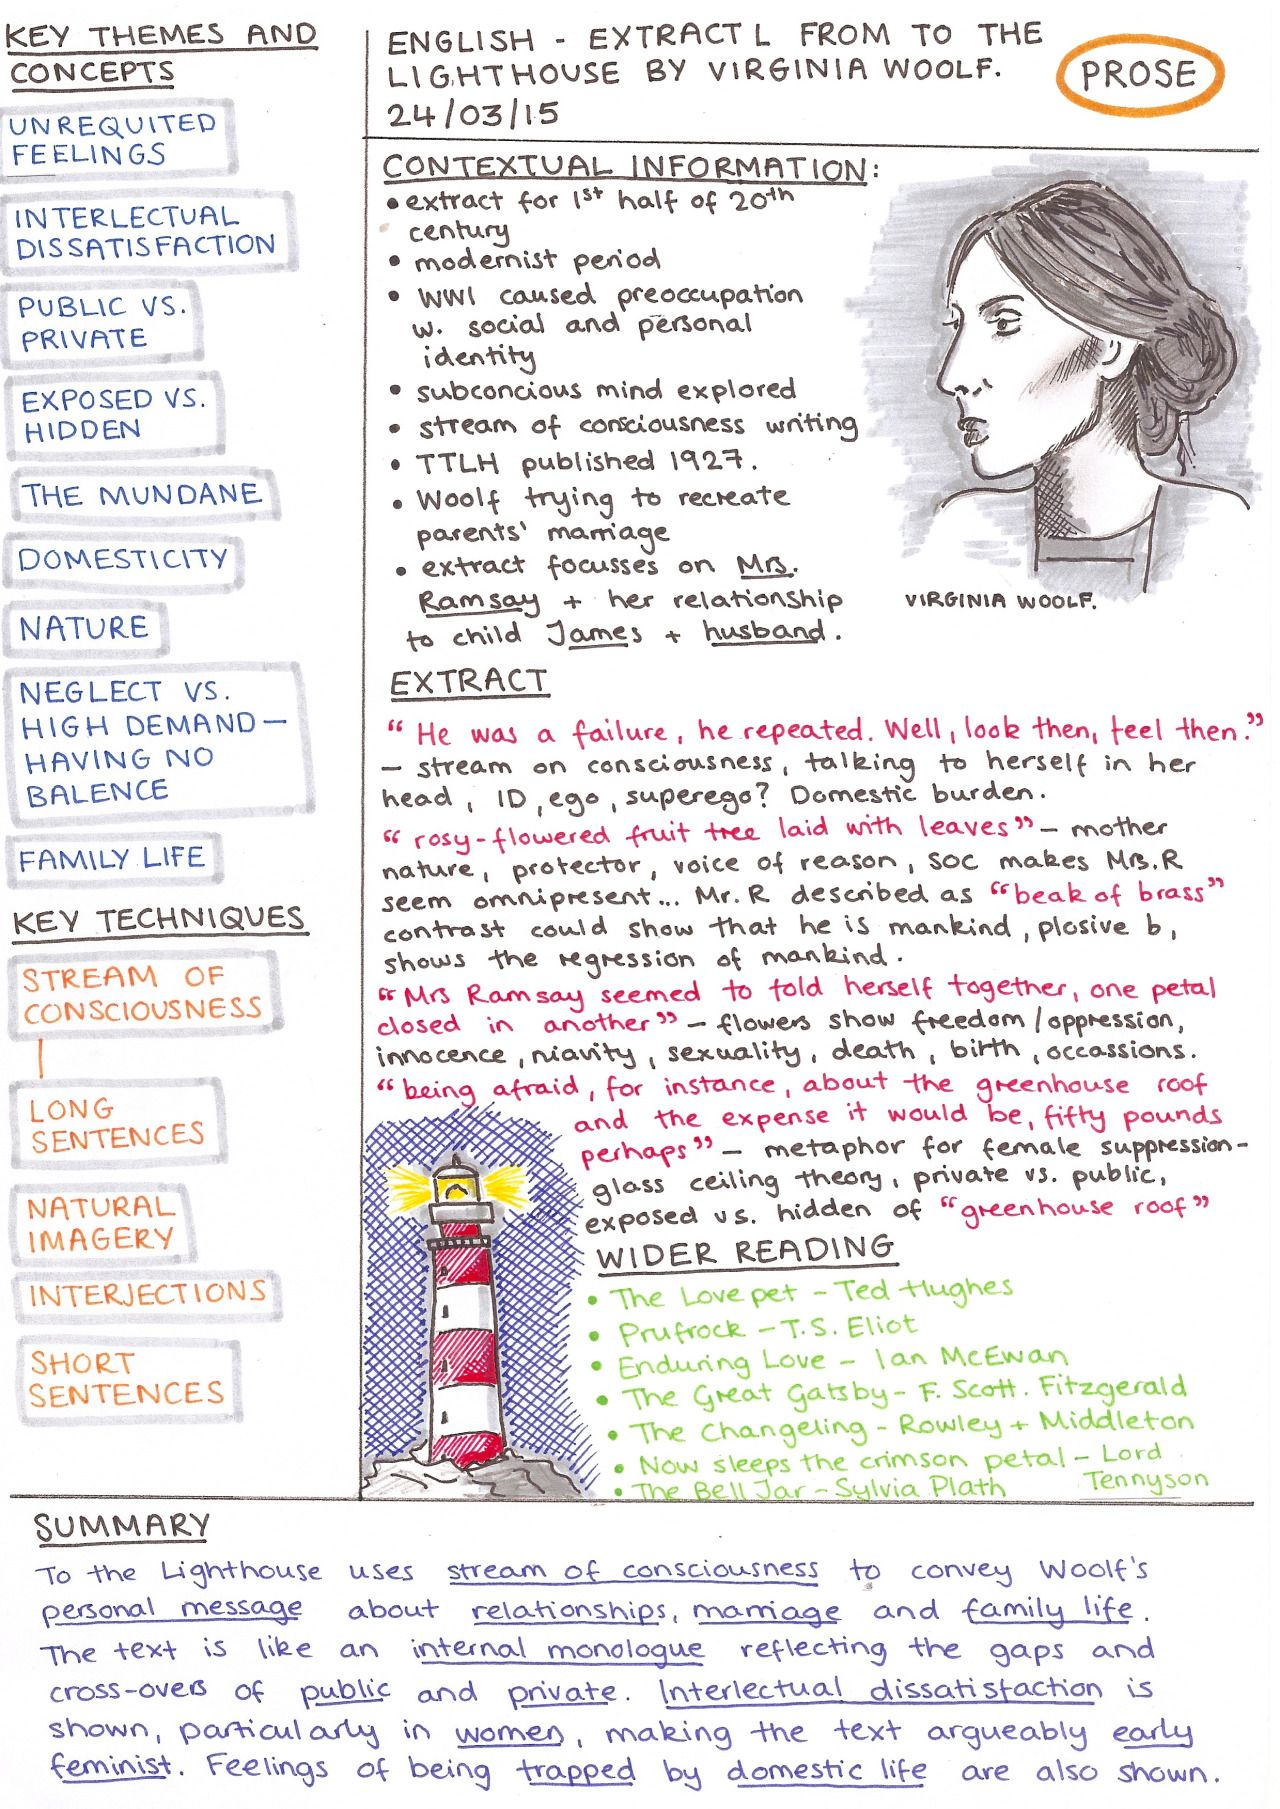 Reviseordie Scanned Notes On Virginia Woolf Extract From AqaS